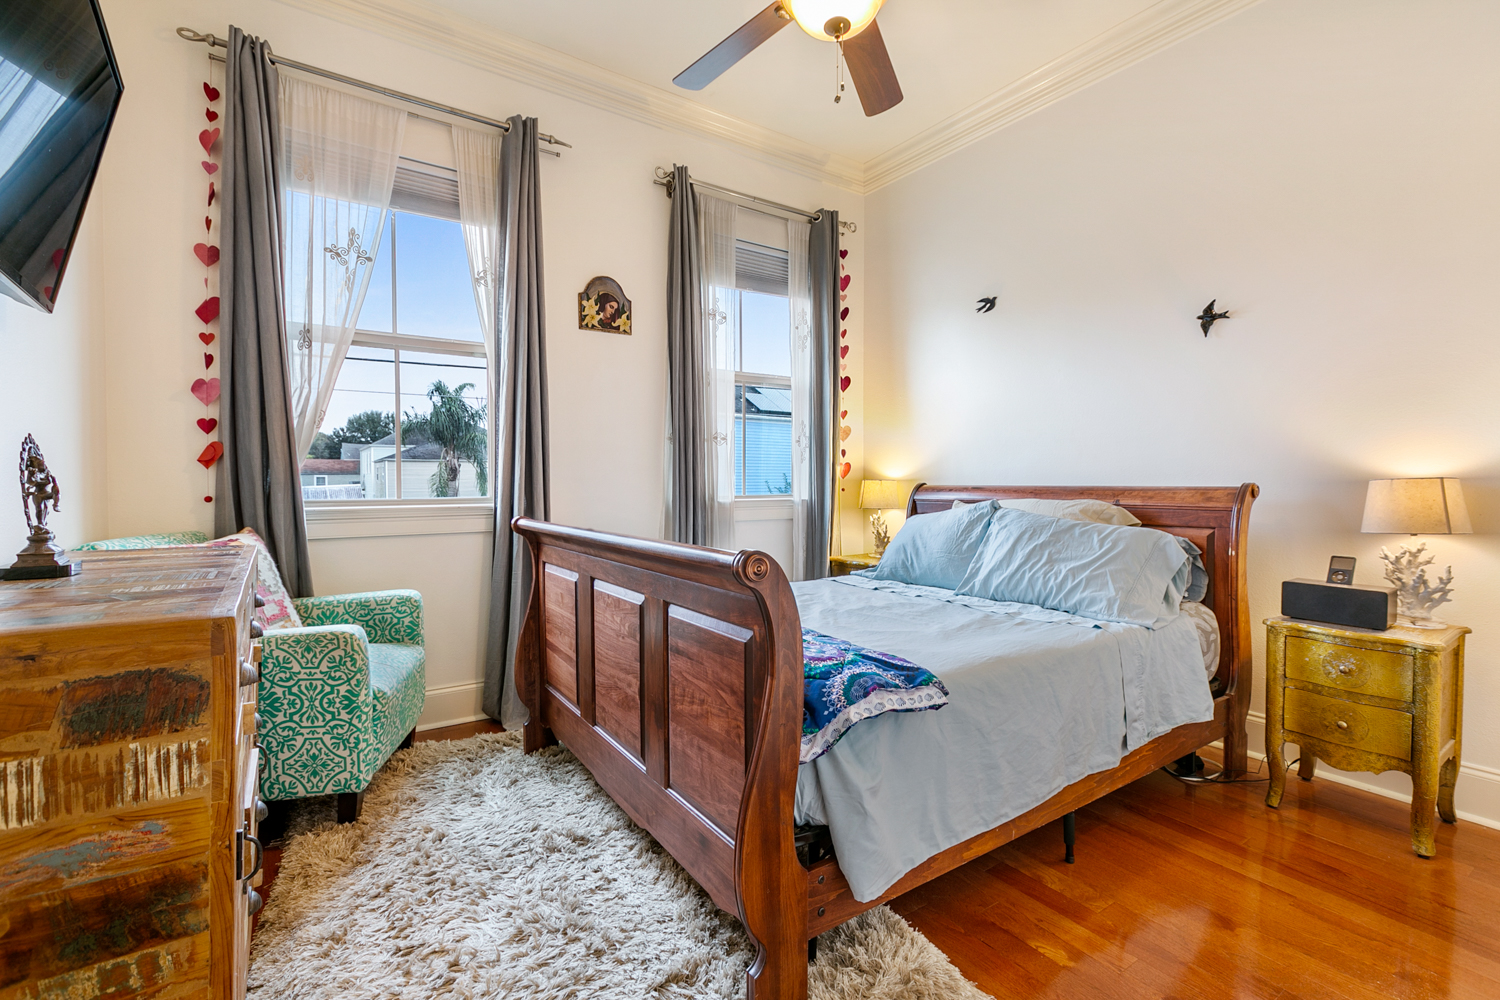 Uptown, Condo, 2 beds, 1.5 baths, $2500 per month New Orleans Rental - devie image_5